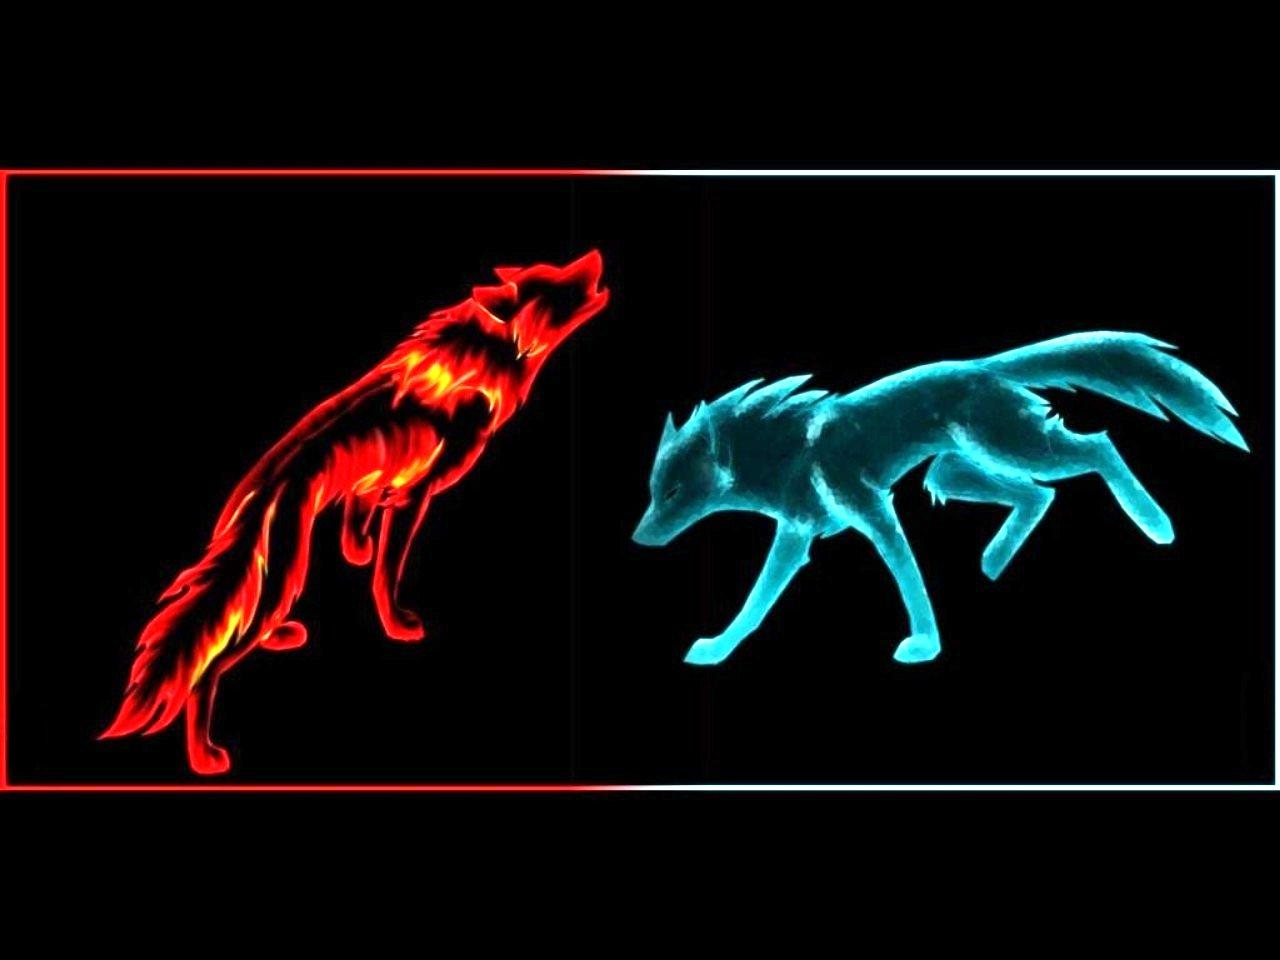 FIRE ICE WOLF wallpaper   ForWallpapercom 1280x960